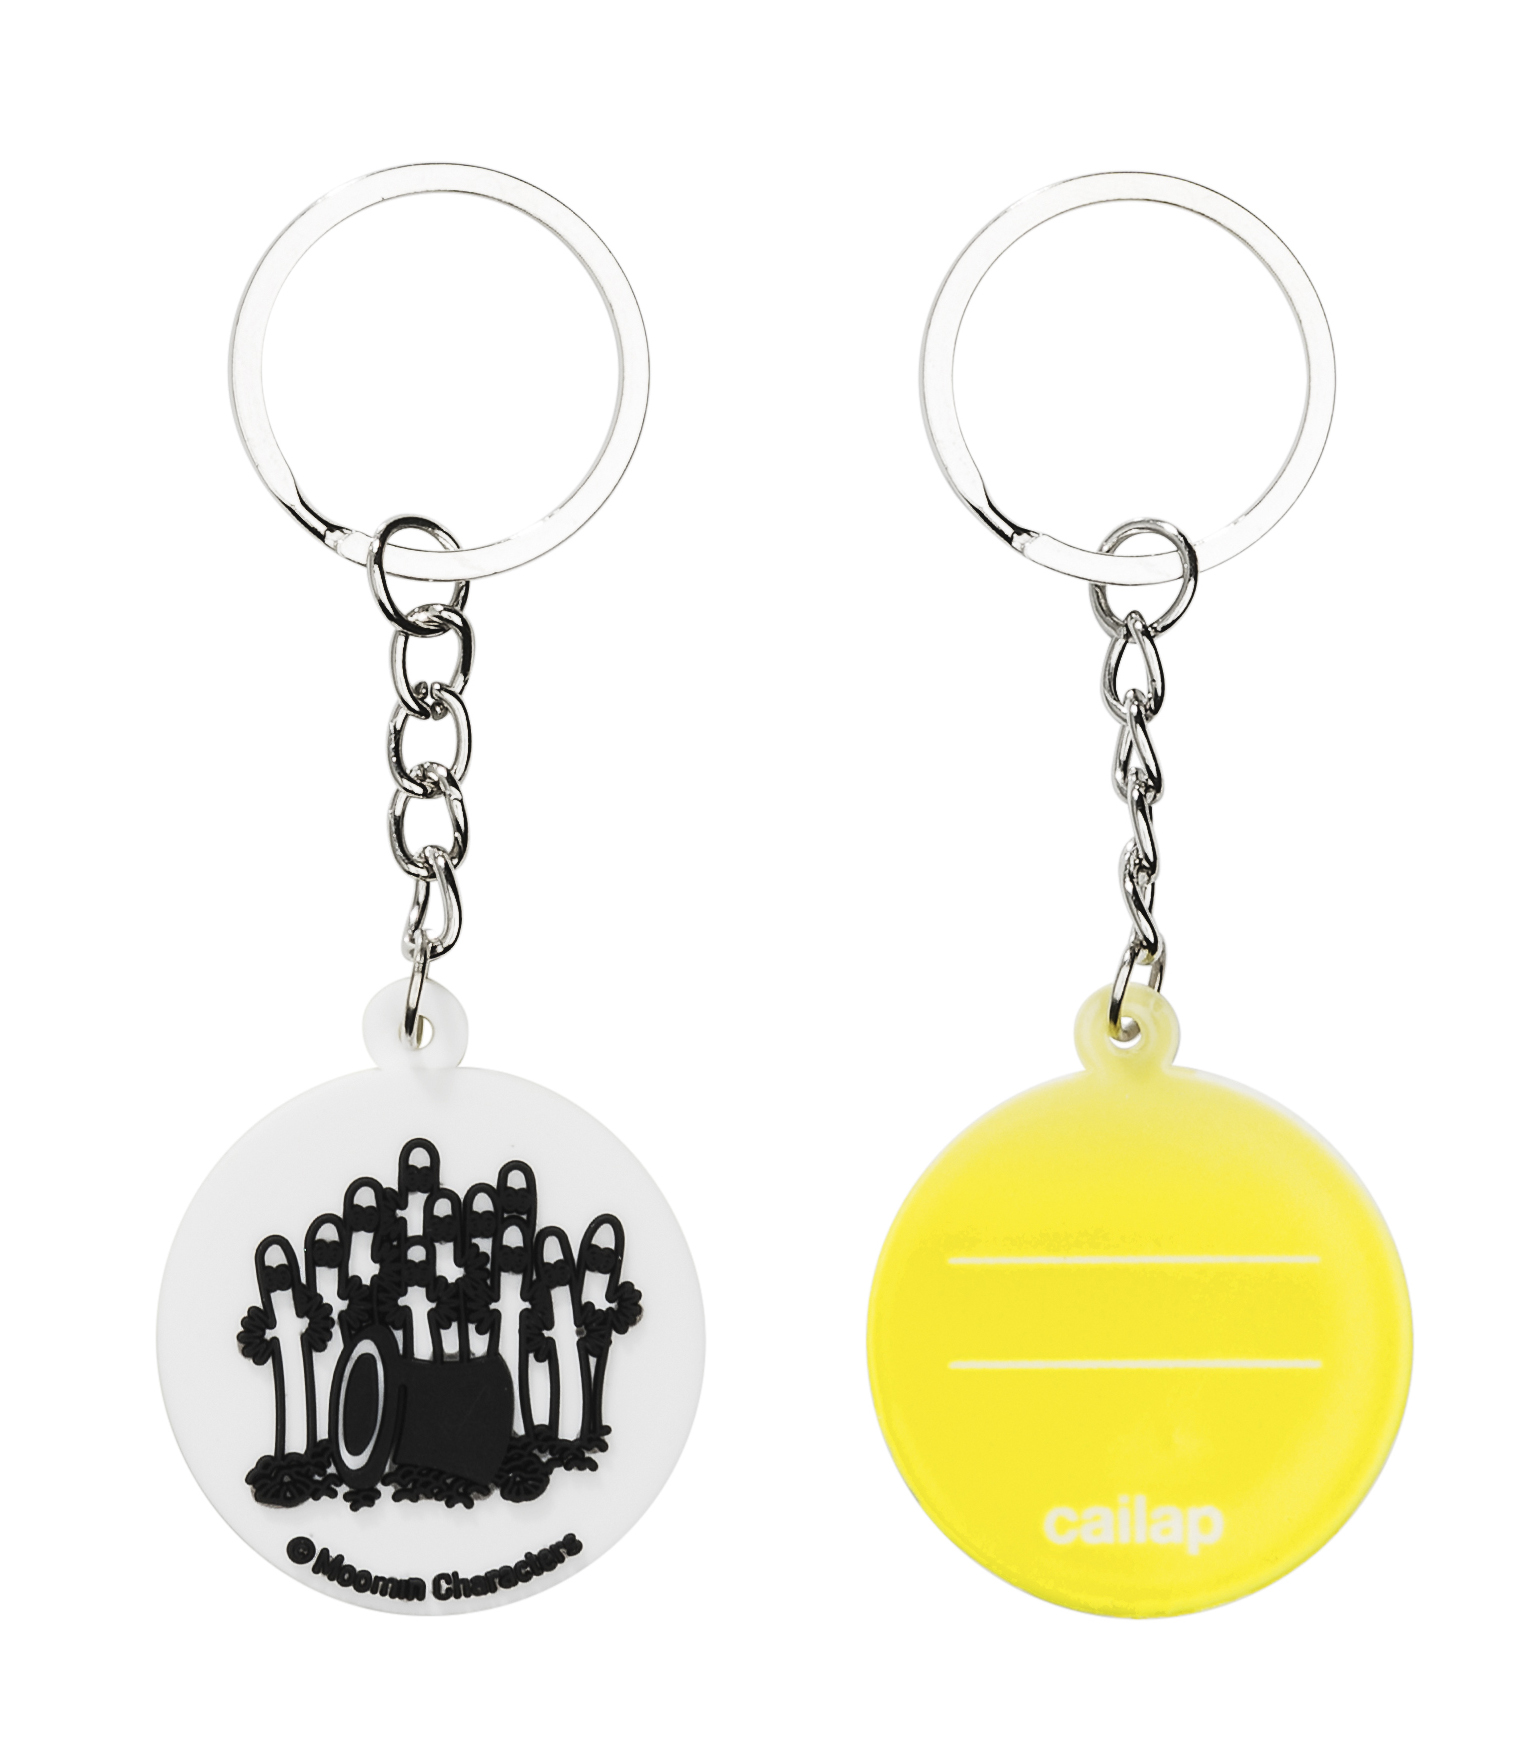 CAILAP KEY RING WITH HATTIFATTENERS